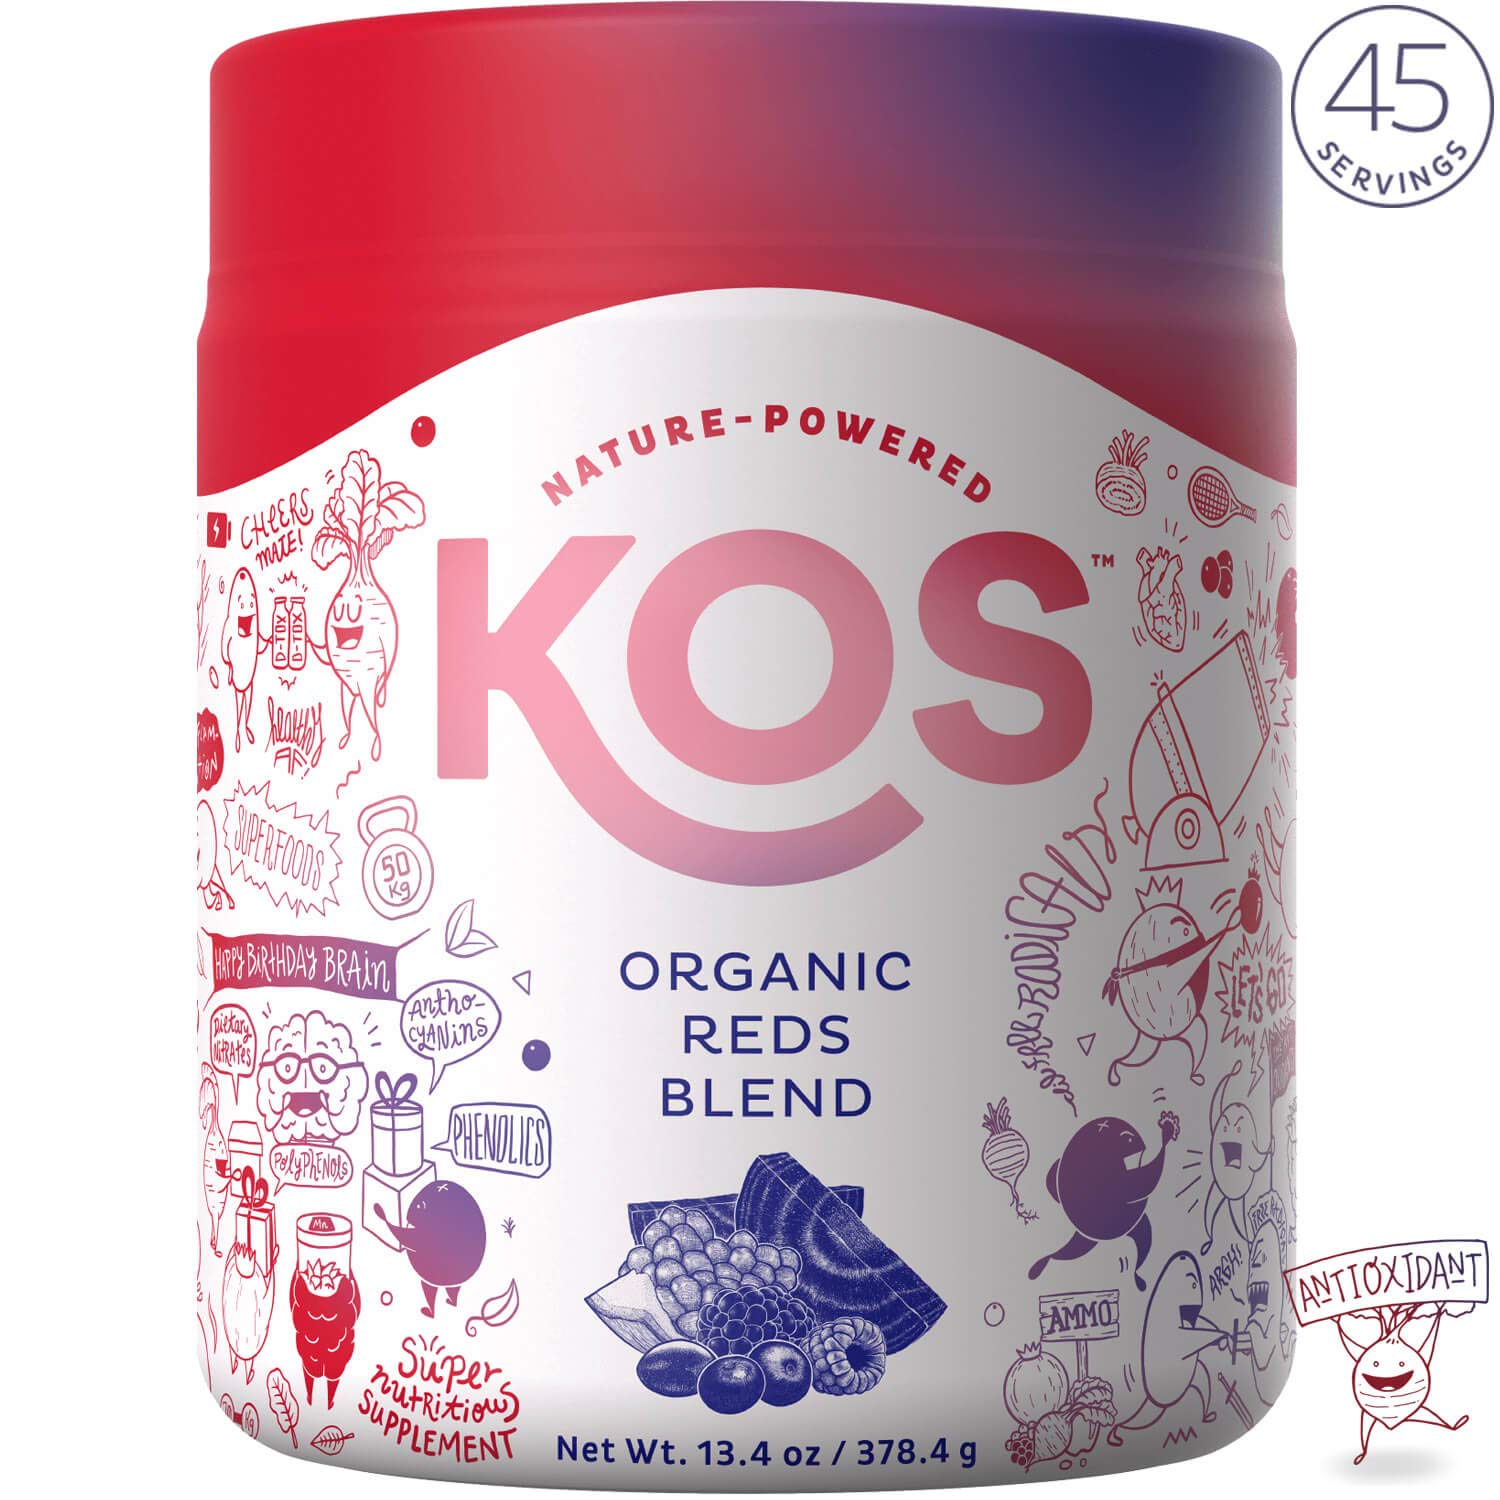 KOS Organic Reds Blend | Amazing Tasting Red Juice Powder Energy Blend | Hydrating, Antioxidant Rich, Resveratrol, Superfood Ingredients, 378.4g, 44 Servings